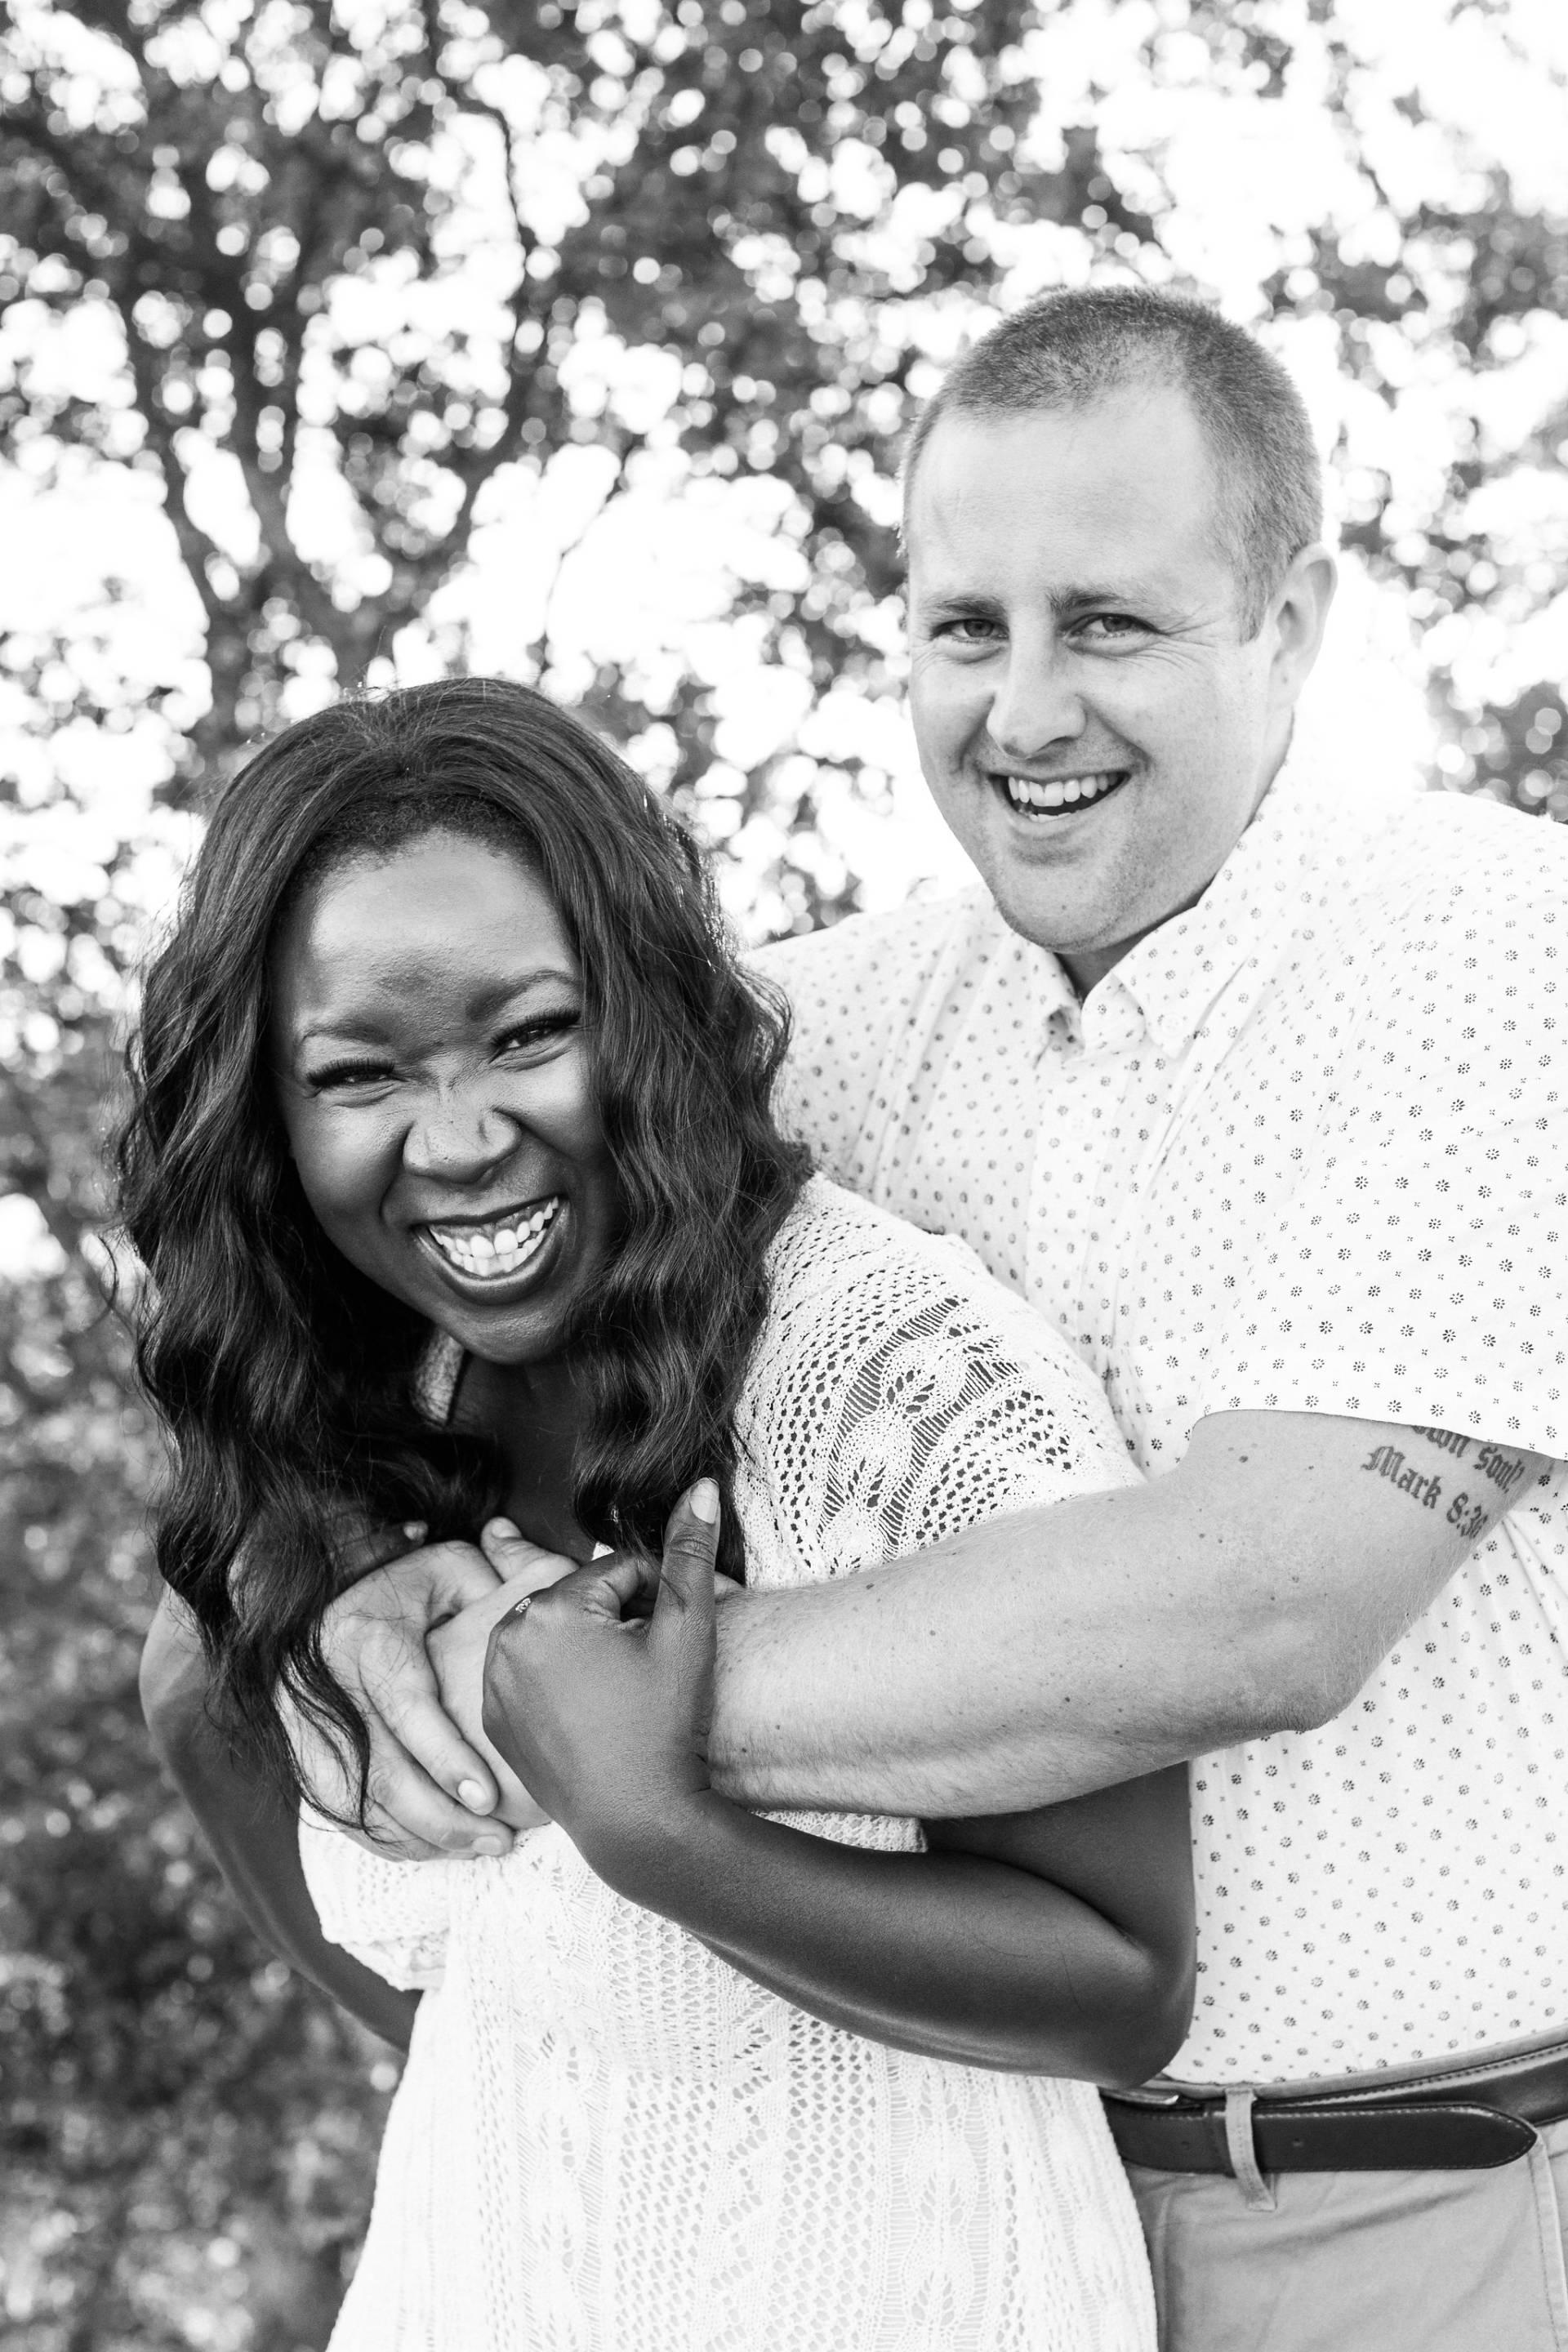 10 Year Anniversary Reflections: 11 years together, 10 years married and 3 kids in the midst of it all! Sharing experience on love, life and lessons learned! God has been faithful to us.